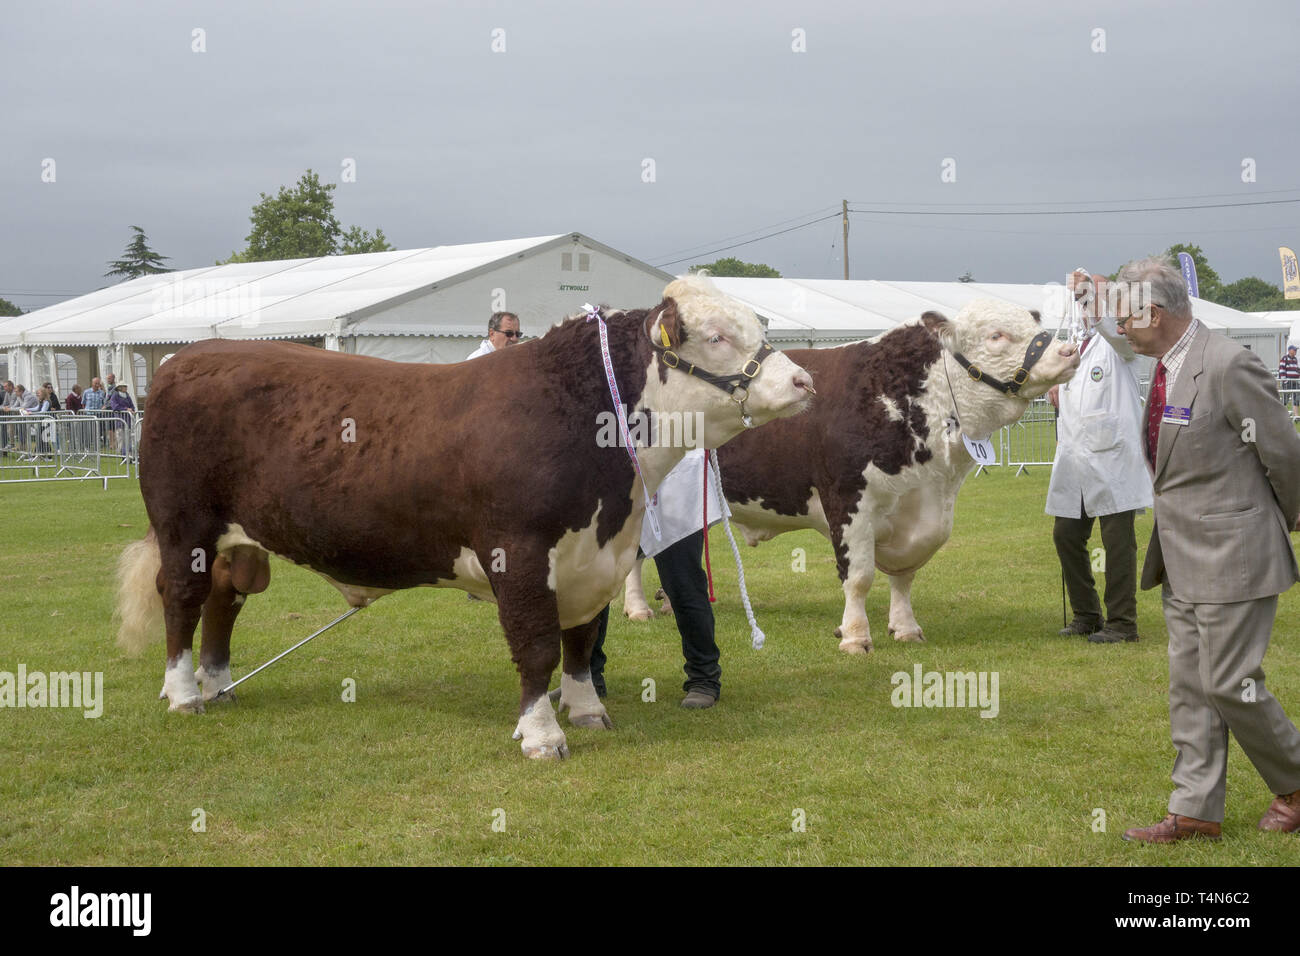 Cattle judging at the South of England Agricultural Show, Ardingly, Sussex, UK - Stock Image